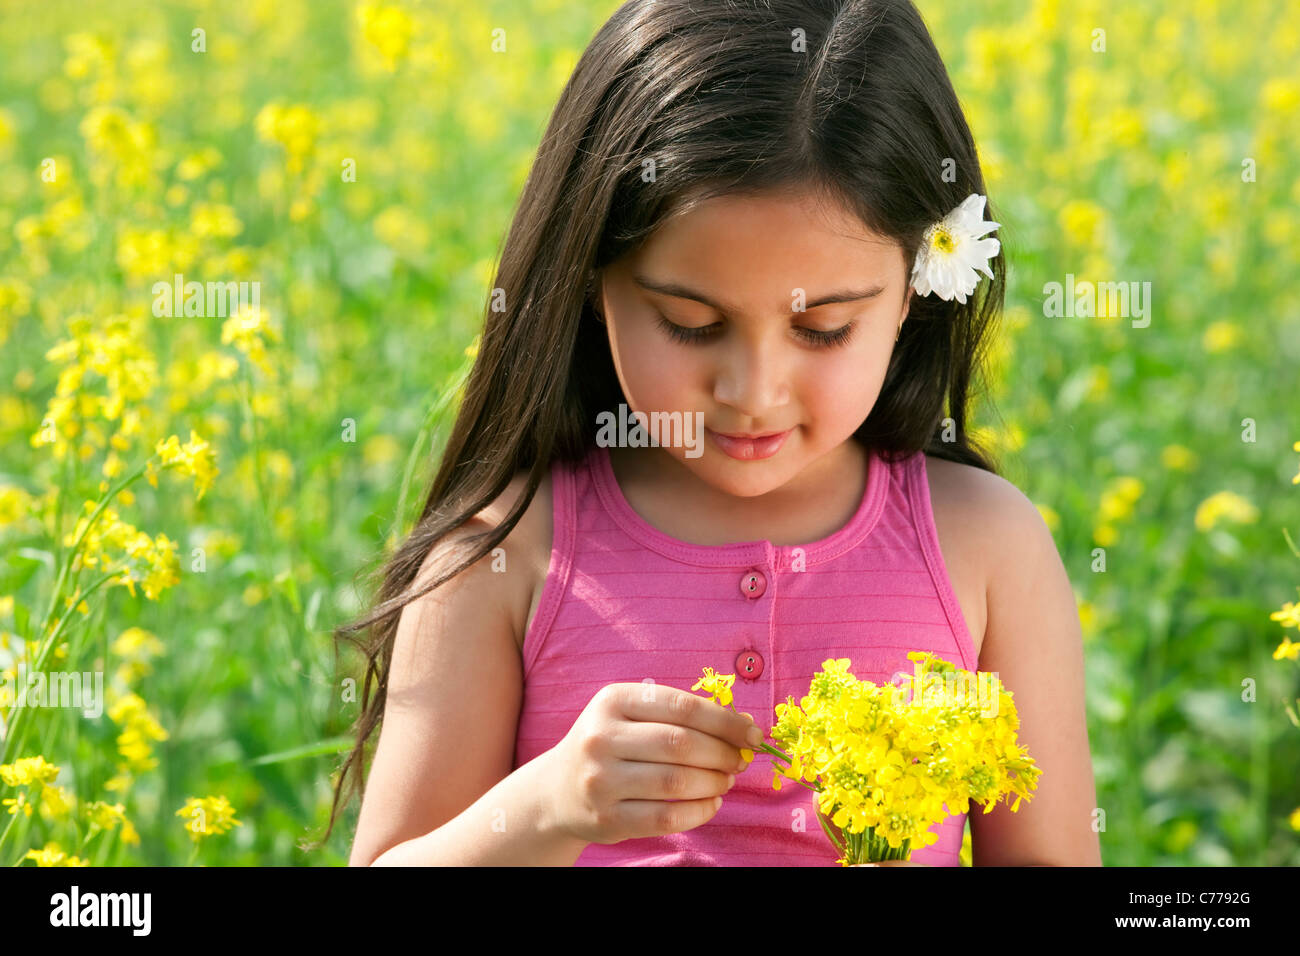 Young girl plucking flowers - Stock Image